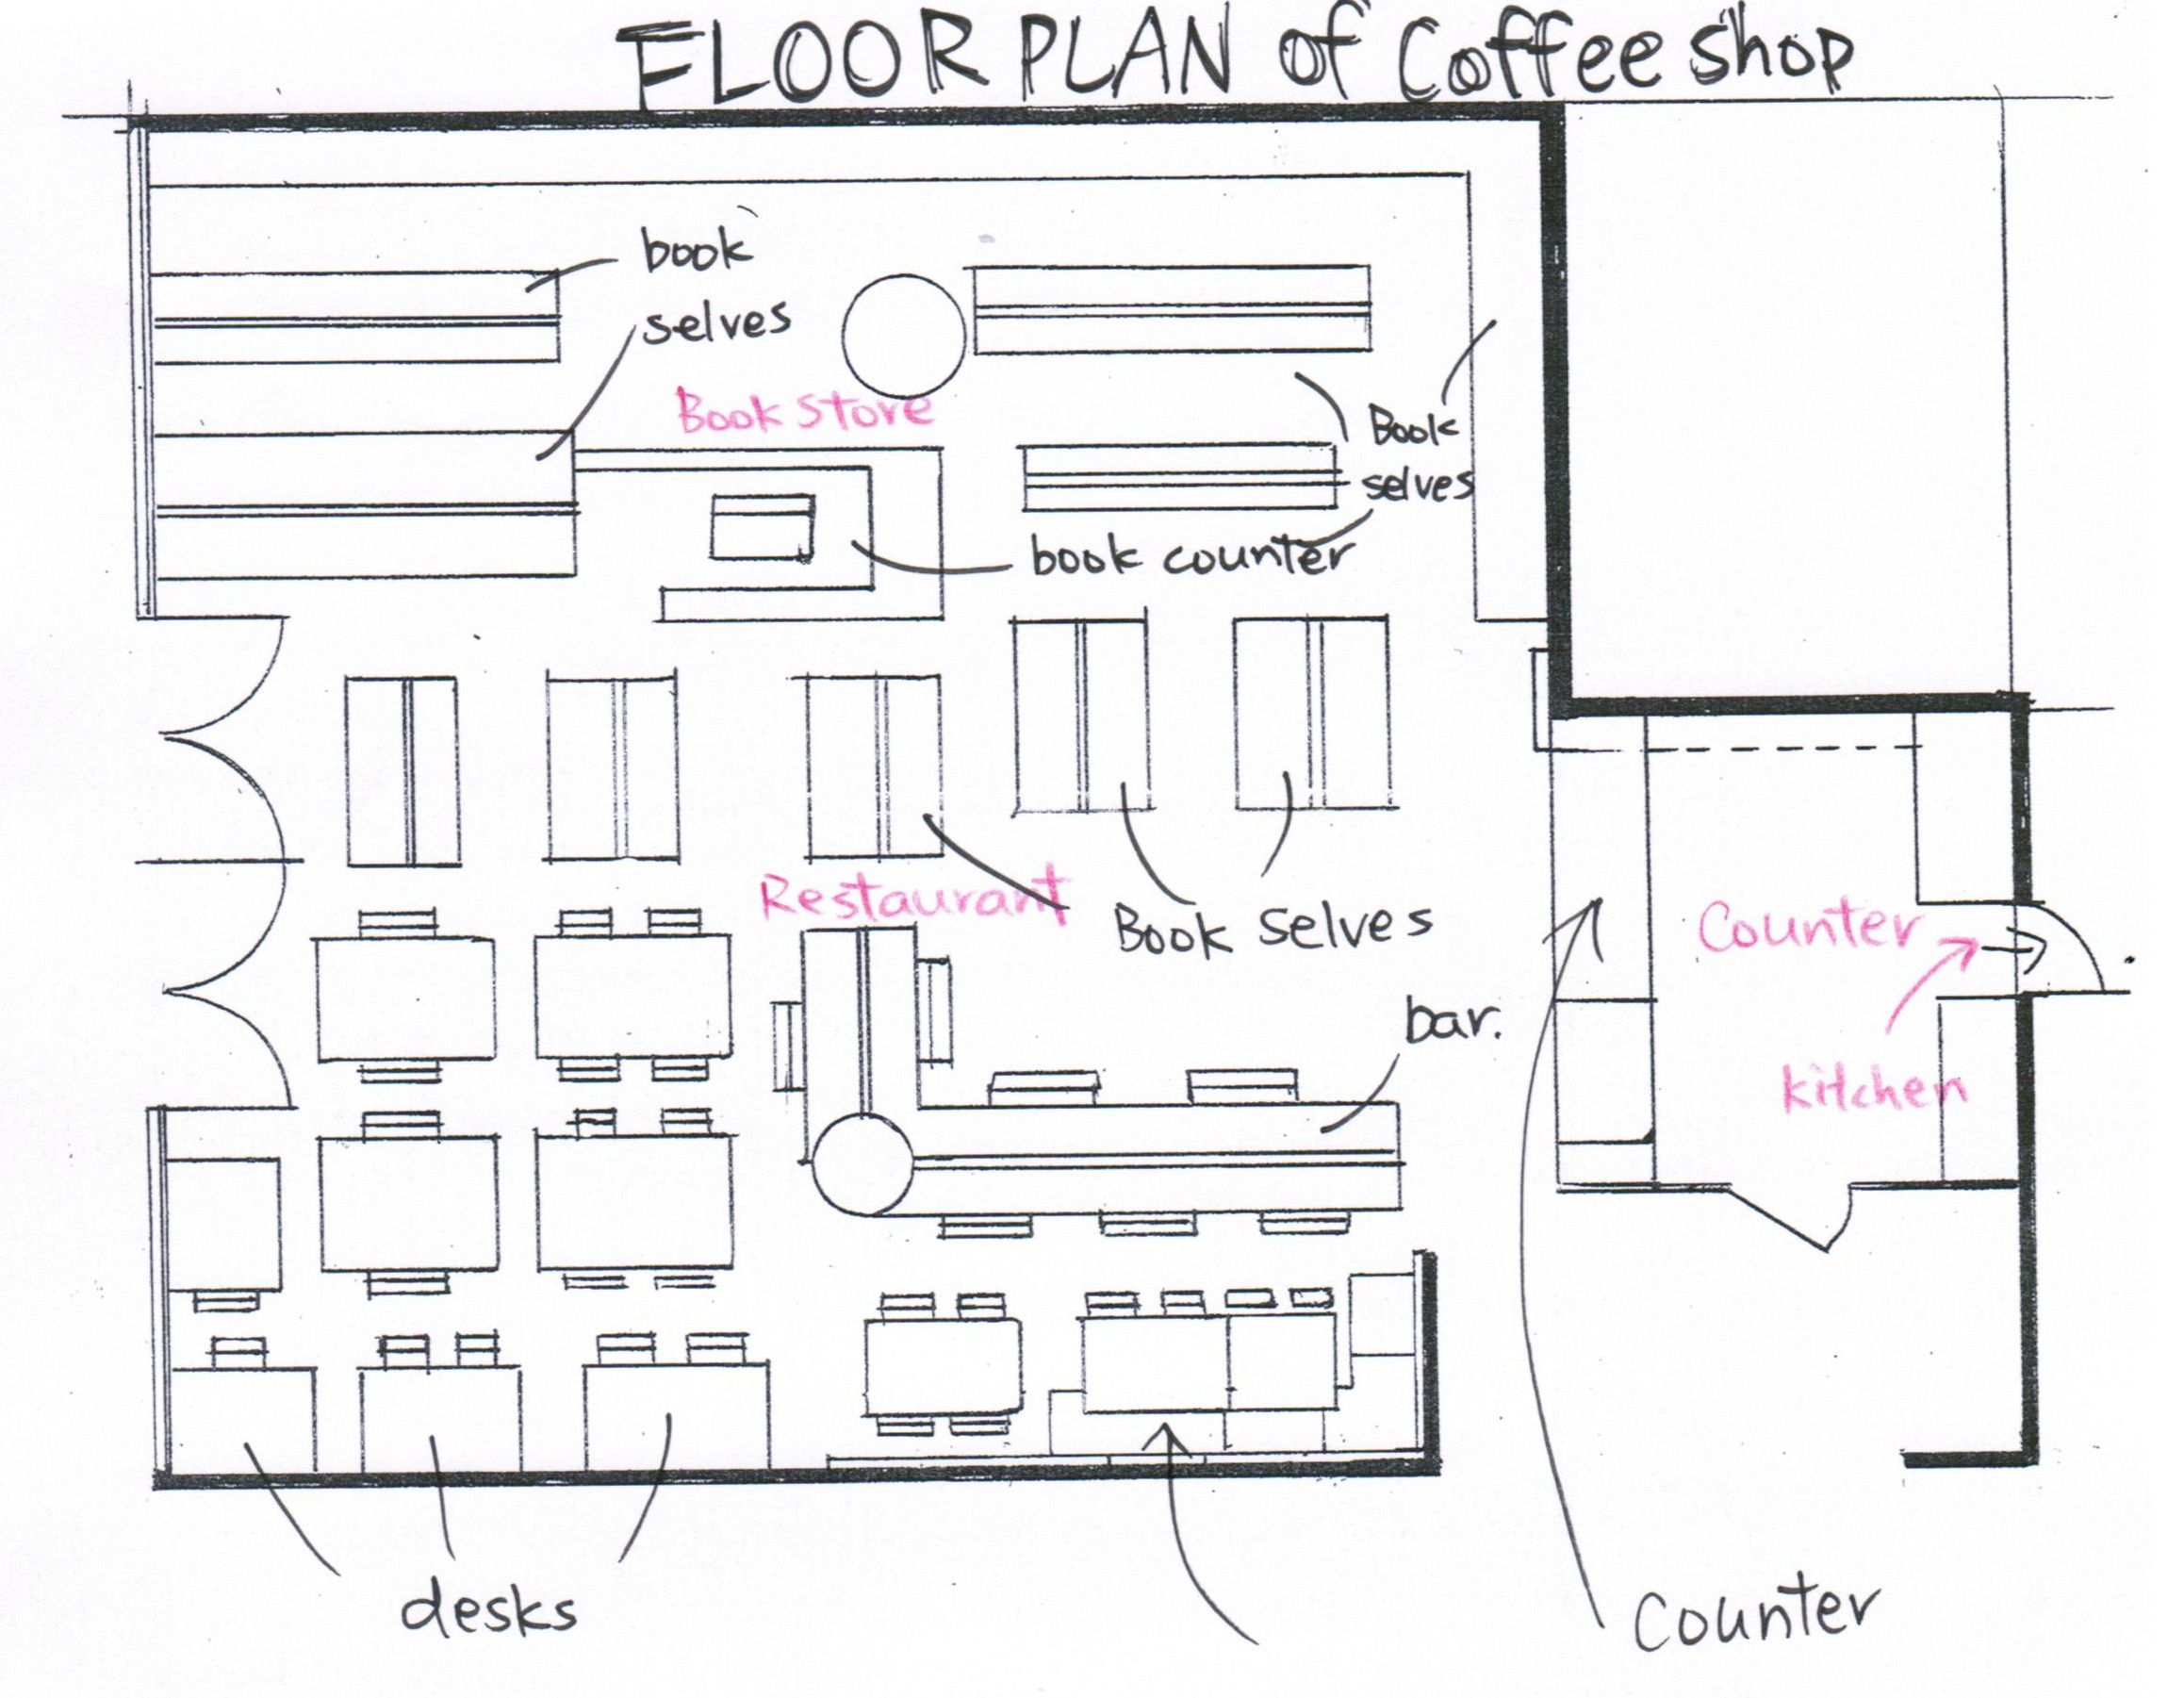 image transparent library Floor plan architectural designs. Drawing store coffee shop